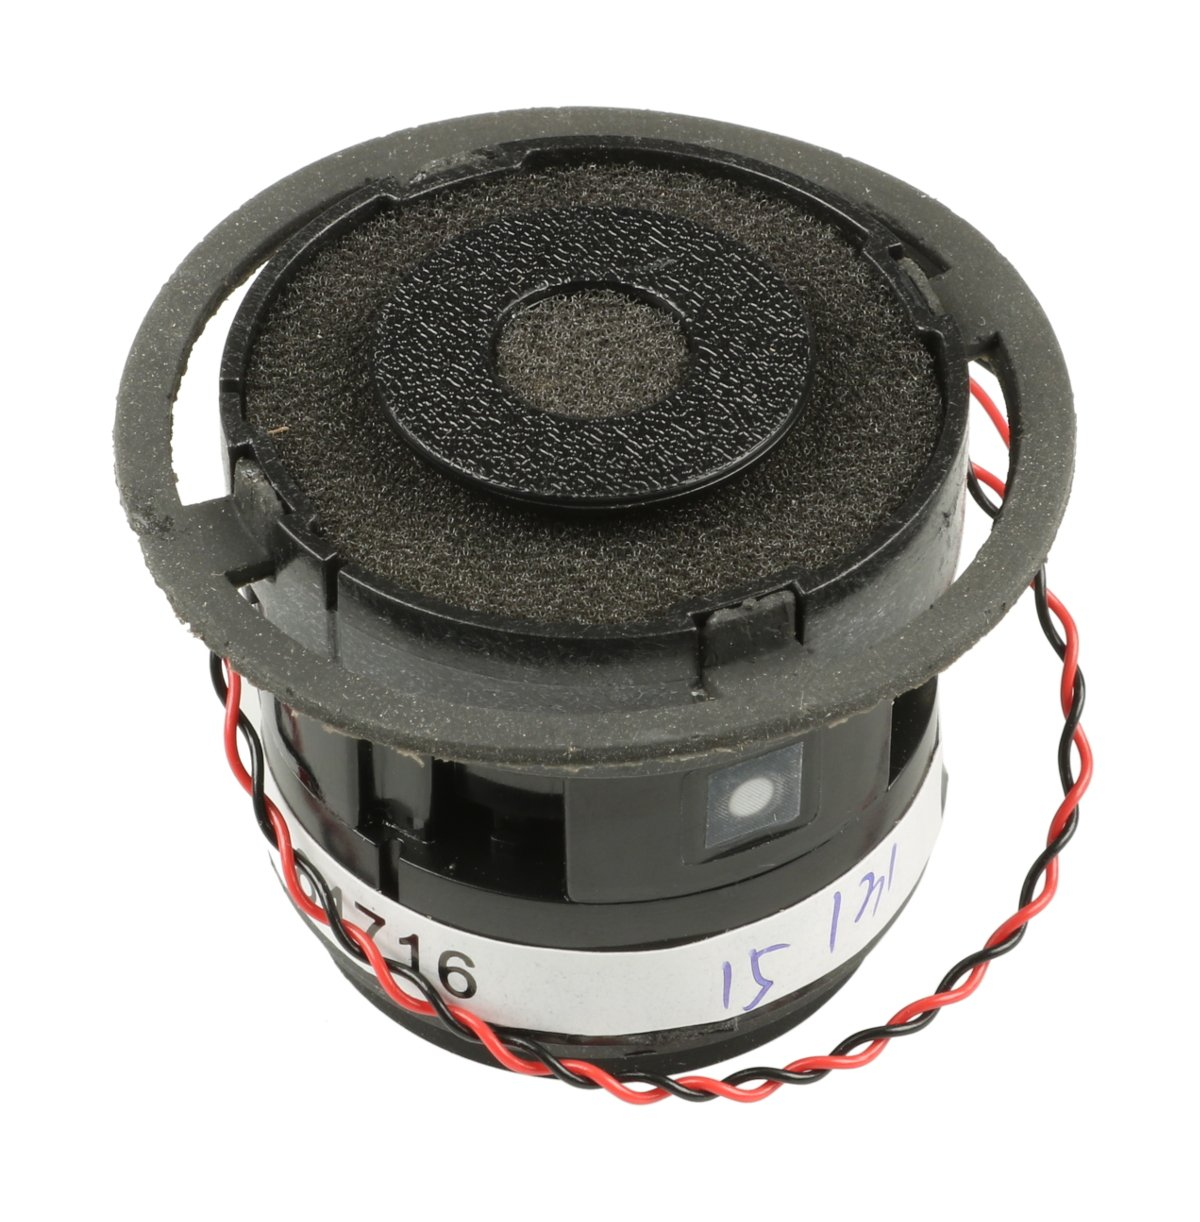 electro voice capsule element for n d967 full compass systems. Black Bedroom Furniture Sets. Home Design Ideas